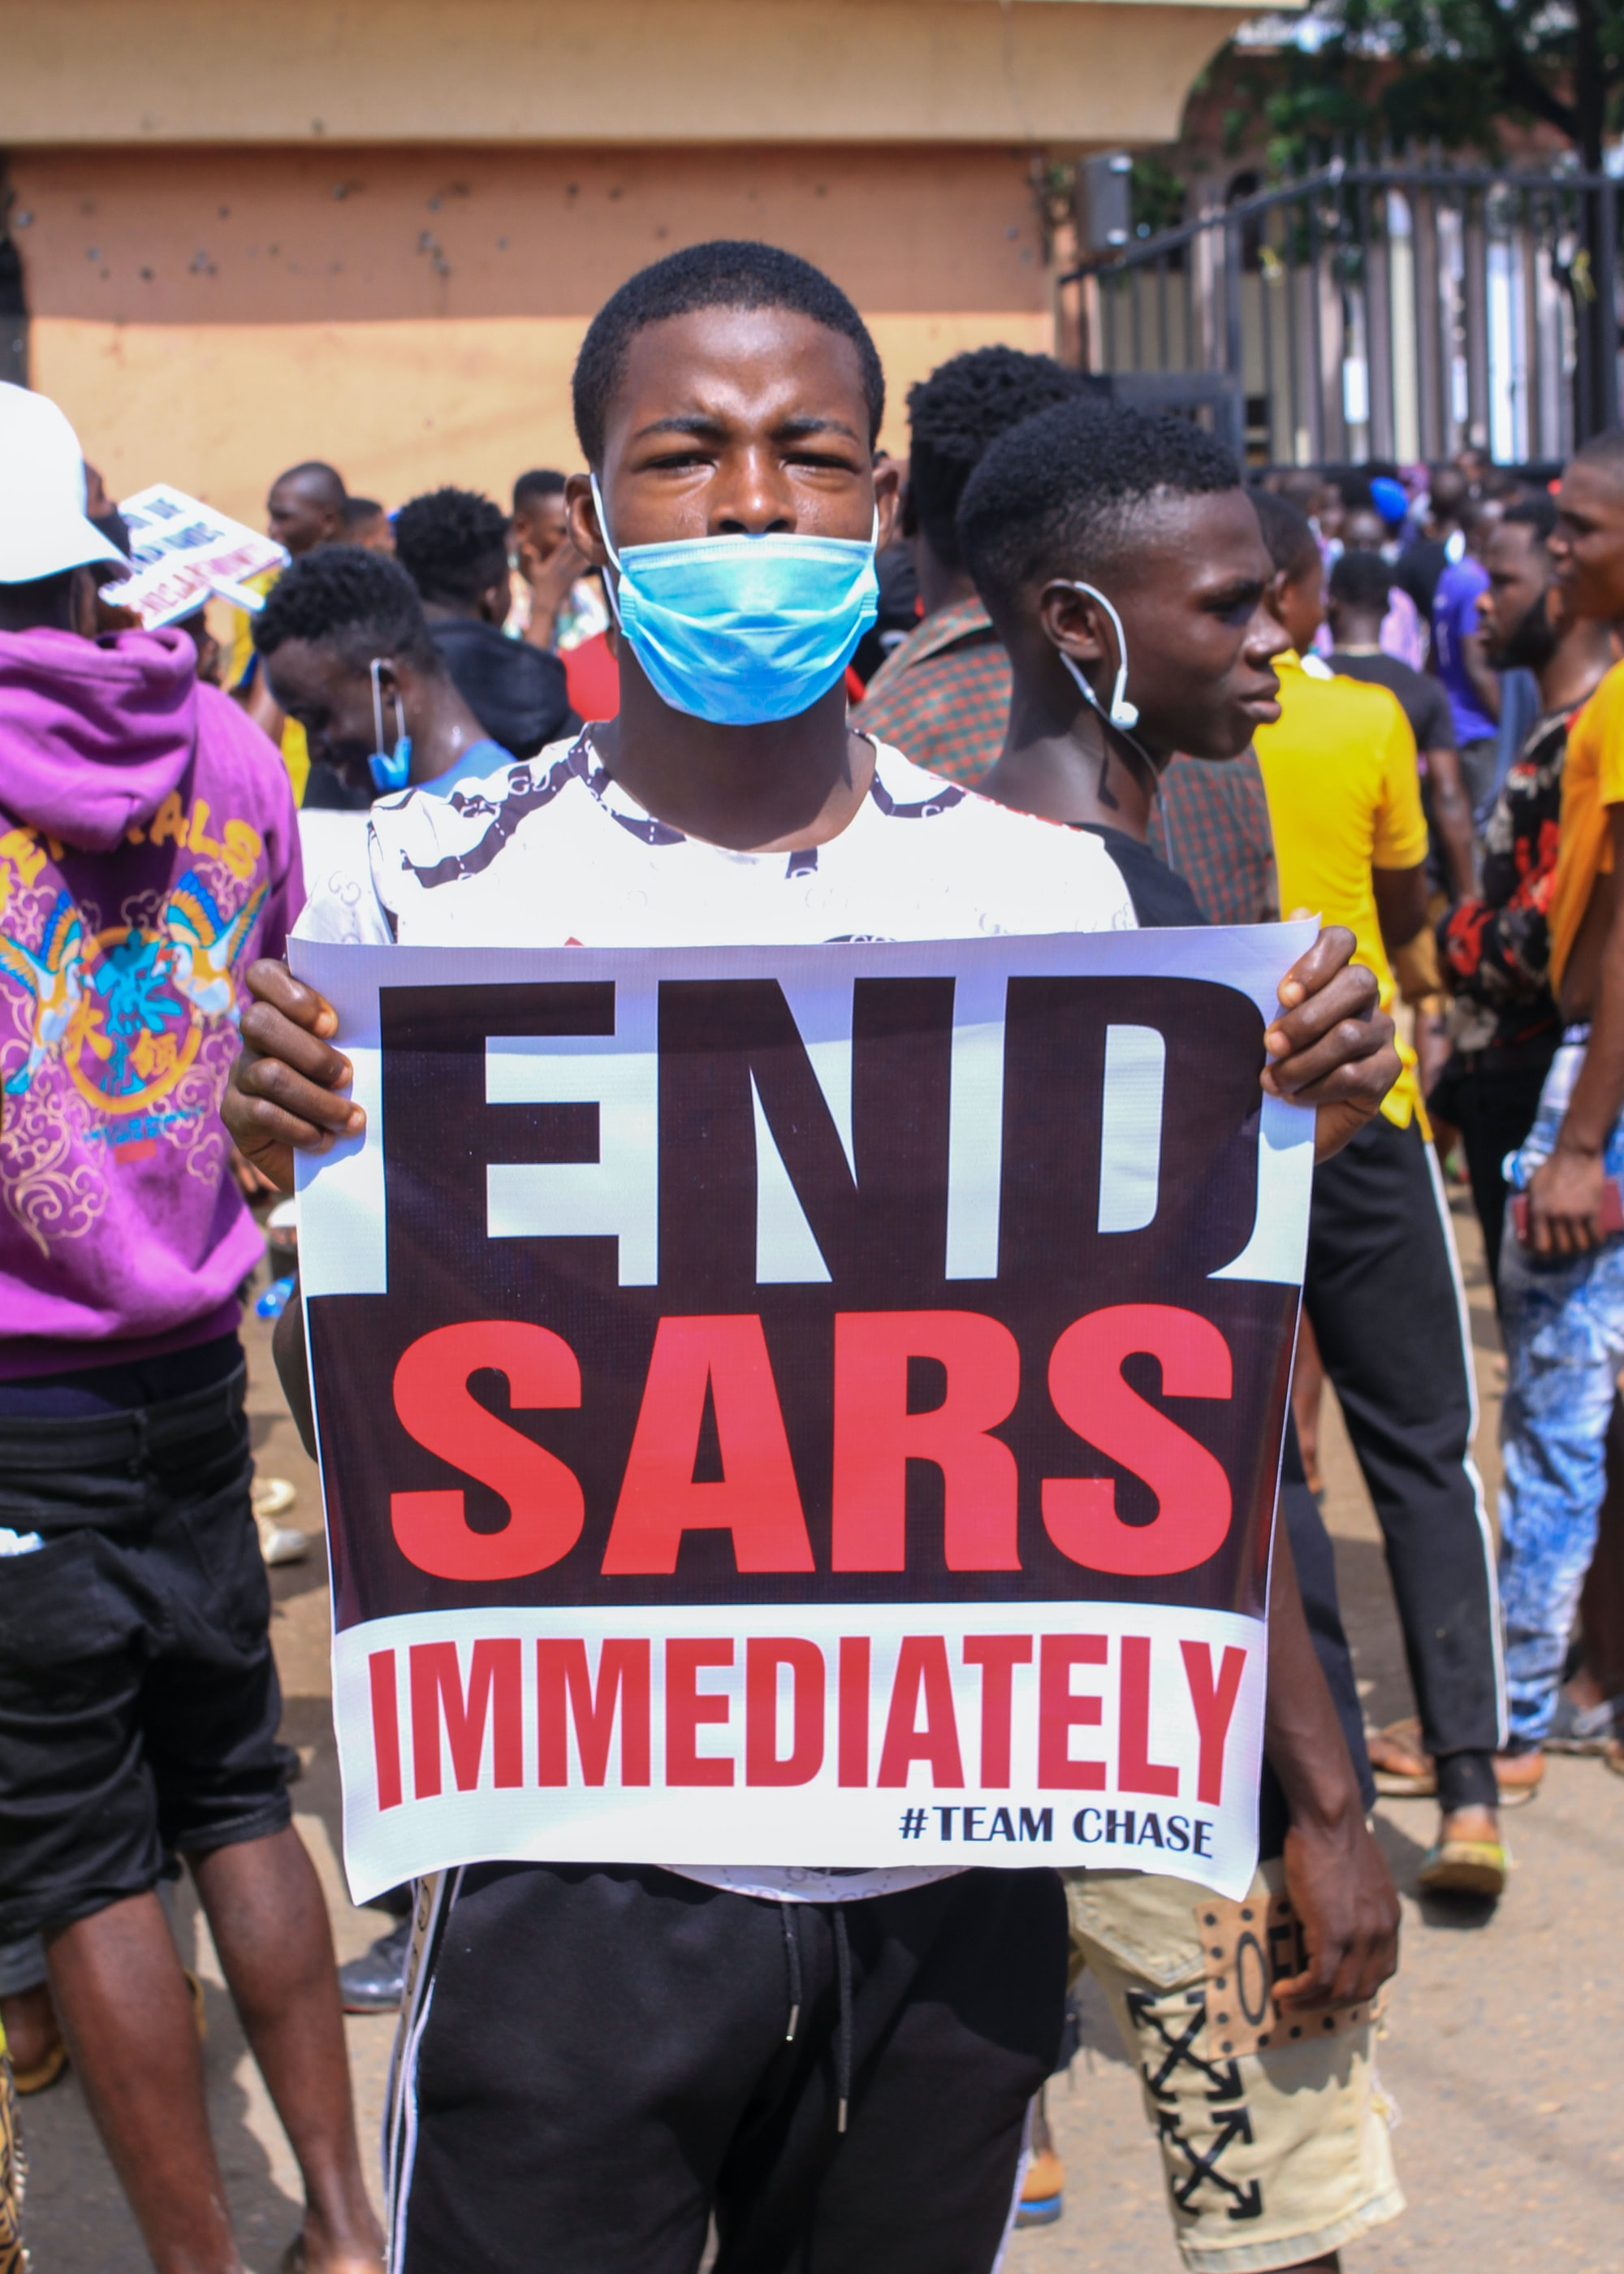 On going Protest in Nigeria 🇳🇬 to End SARS killing,